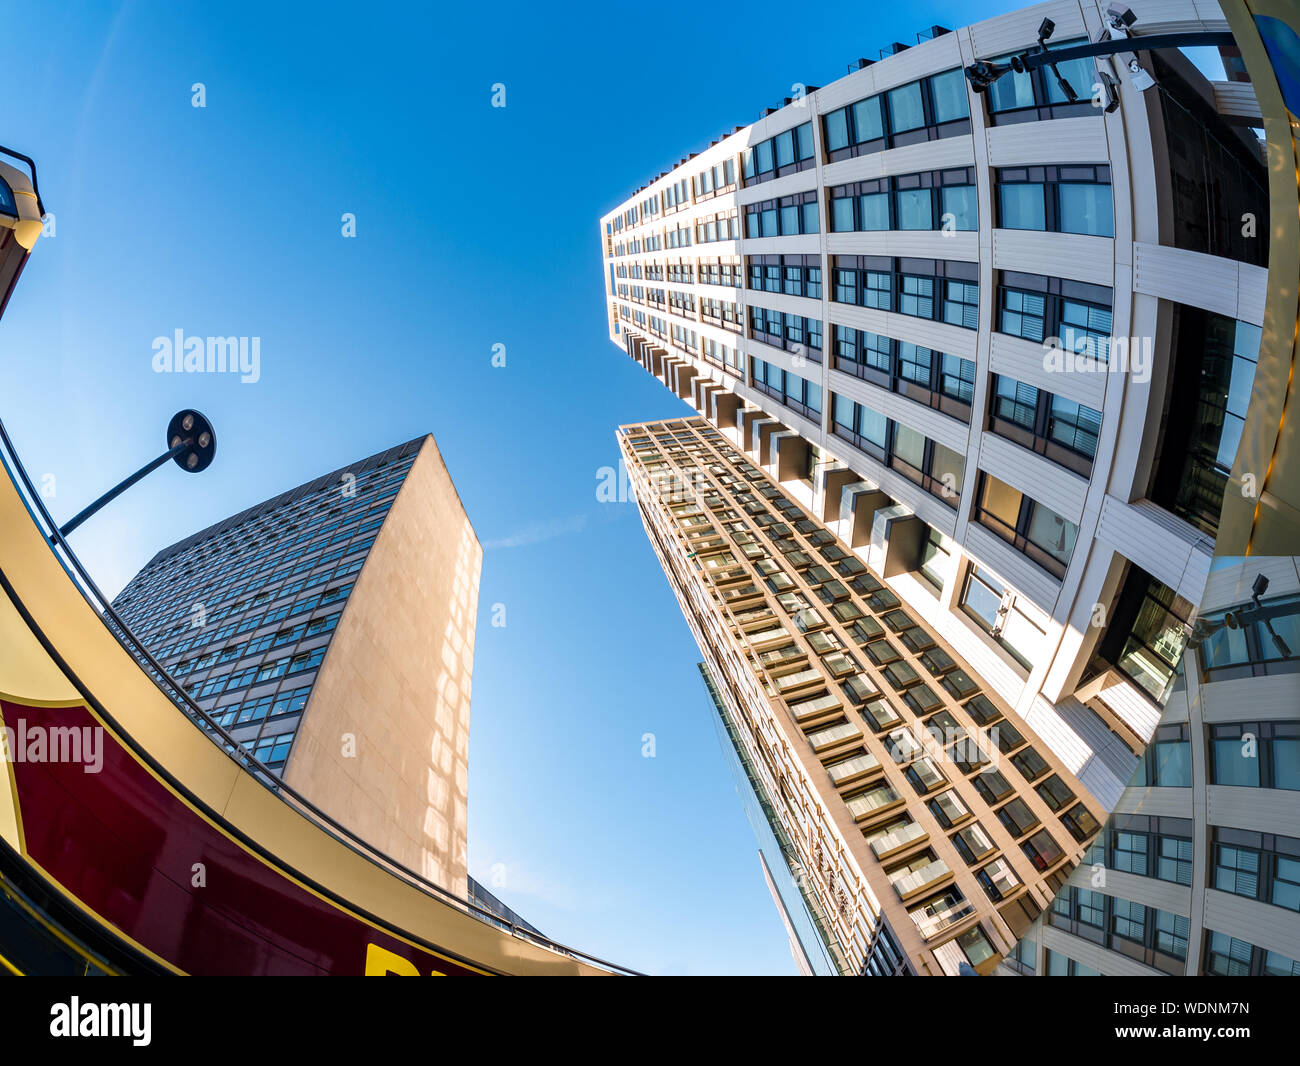 Wide angle view of tall buildings in the City of London against blue sky in England Stock Photo